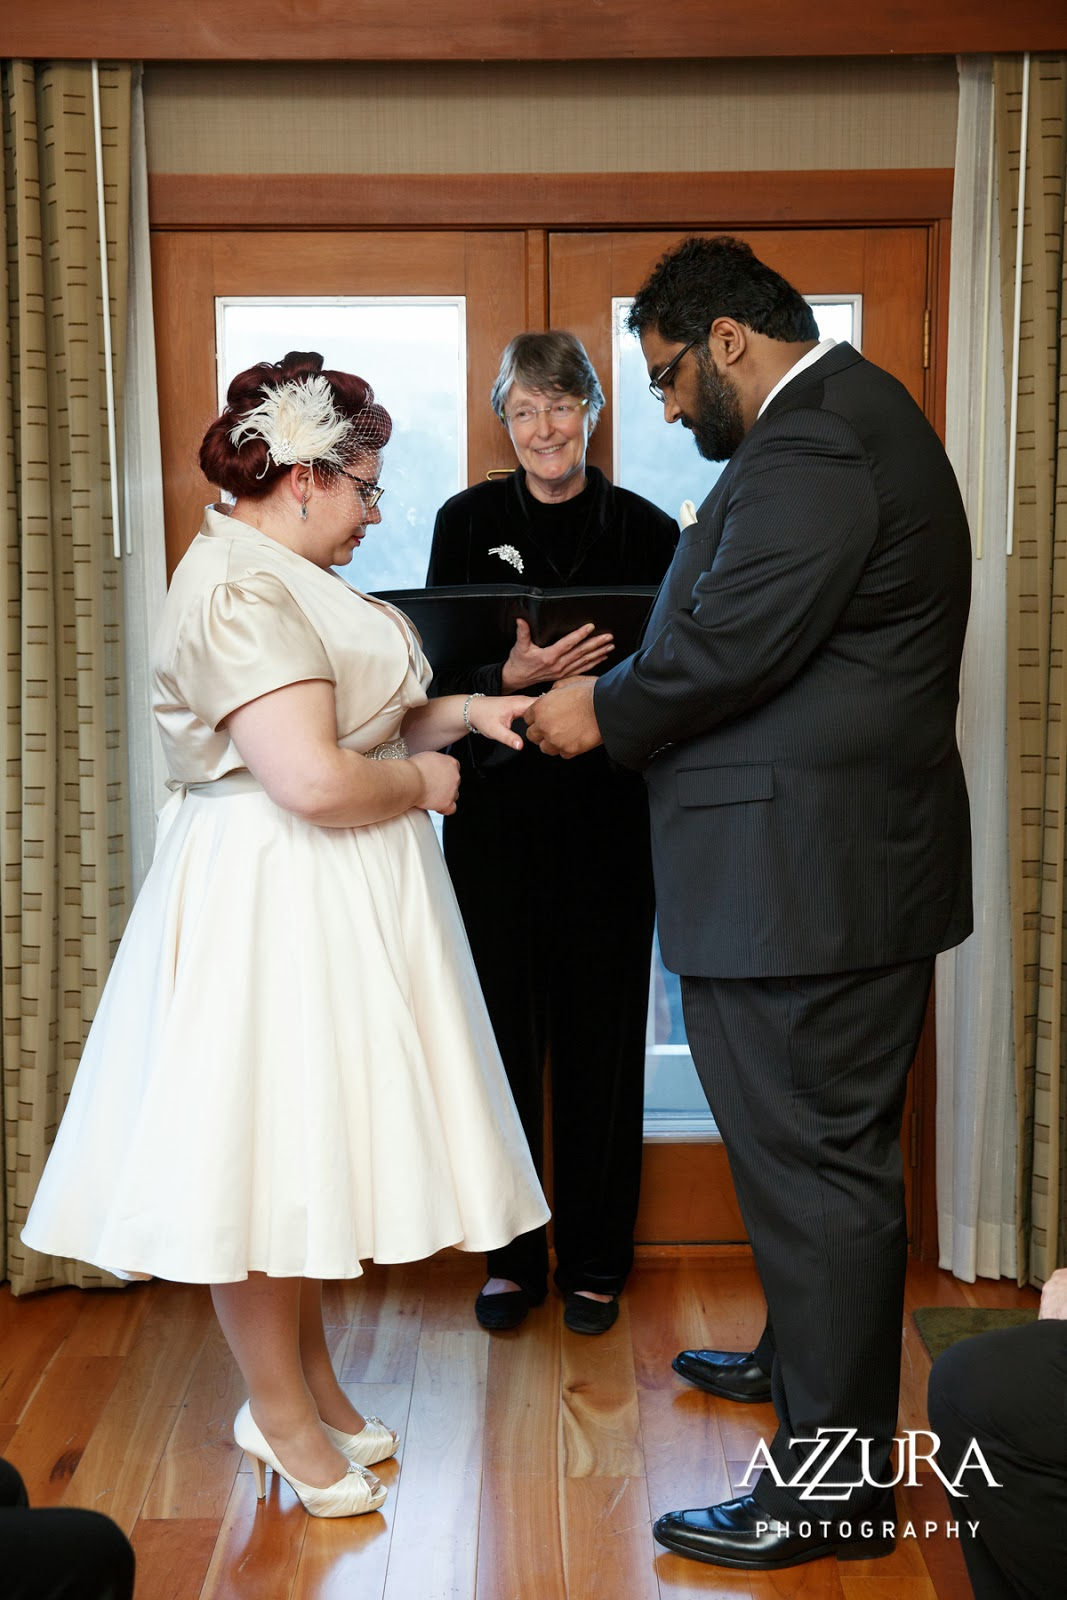 Ankur and Abby exchange wedding rings - Patricia Stimac, Seattle Wedding Officiant